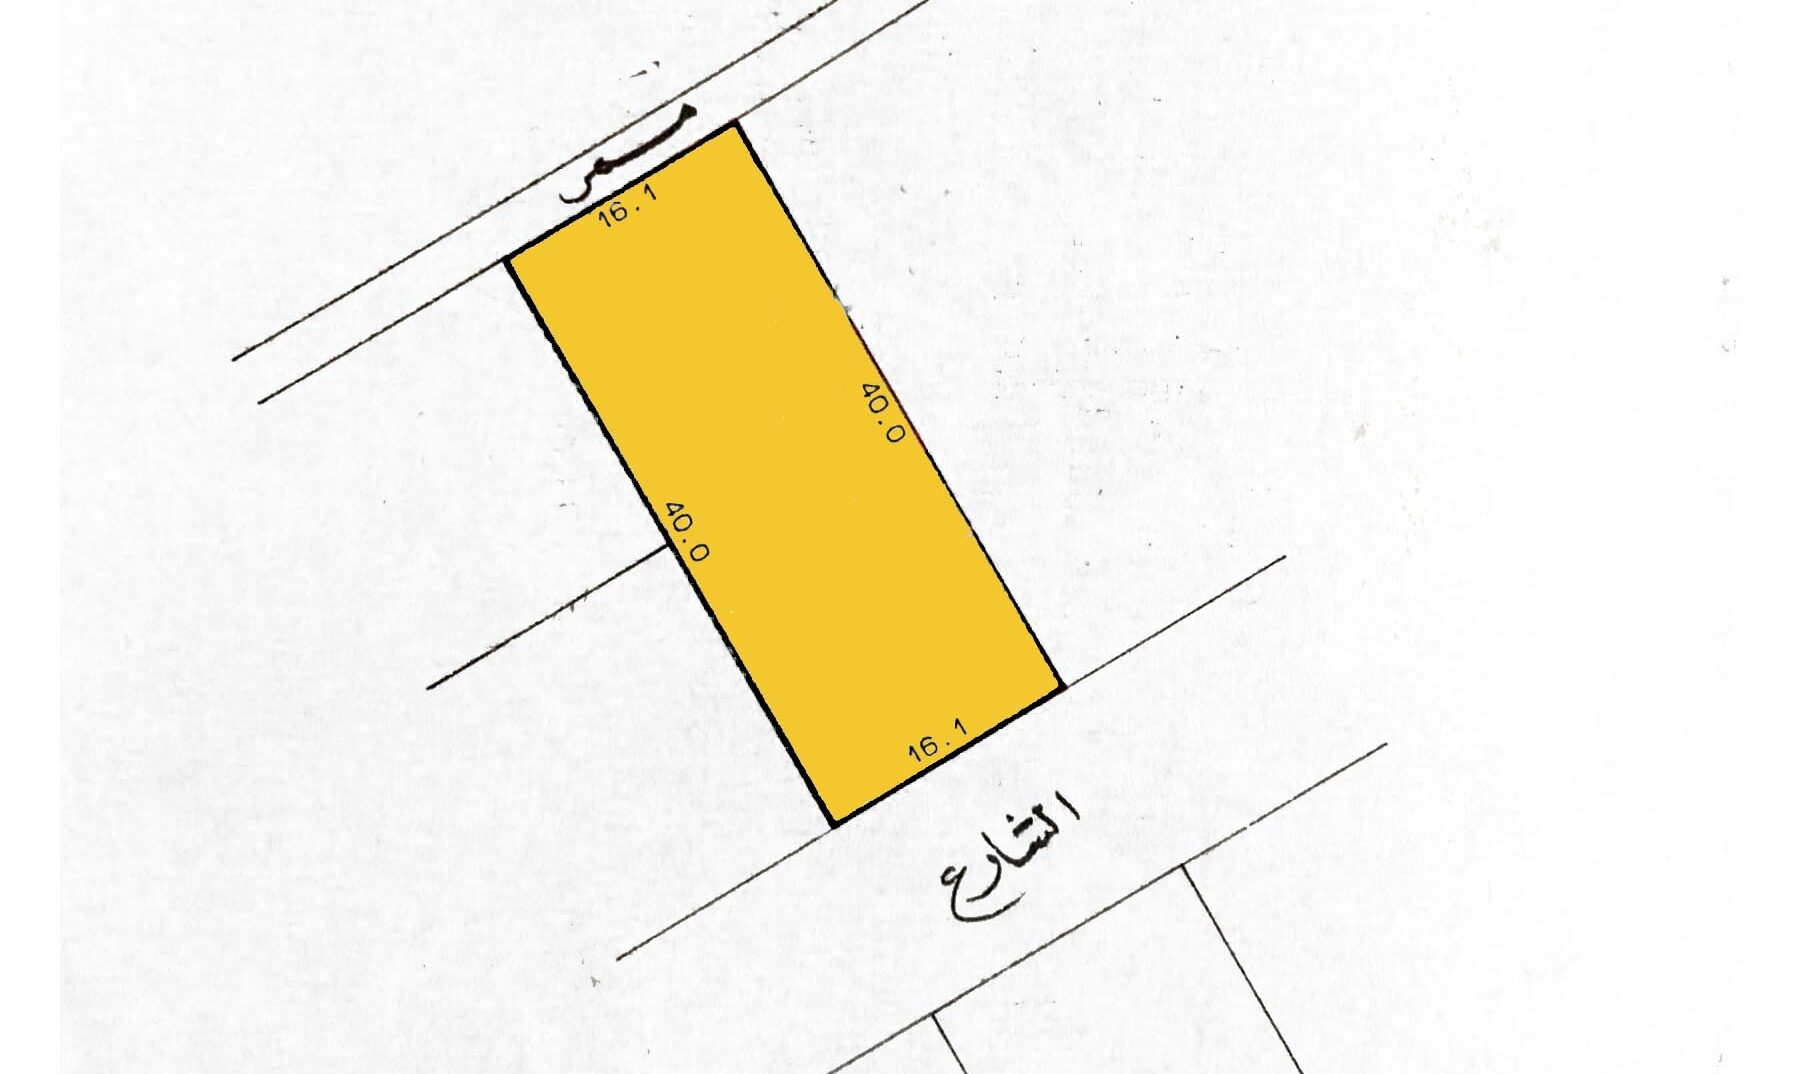 Residential land for sale located in West Al Eker